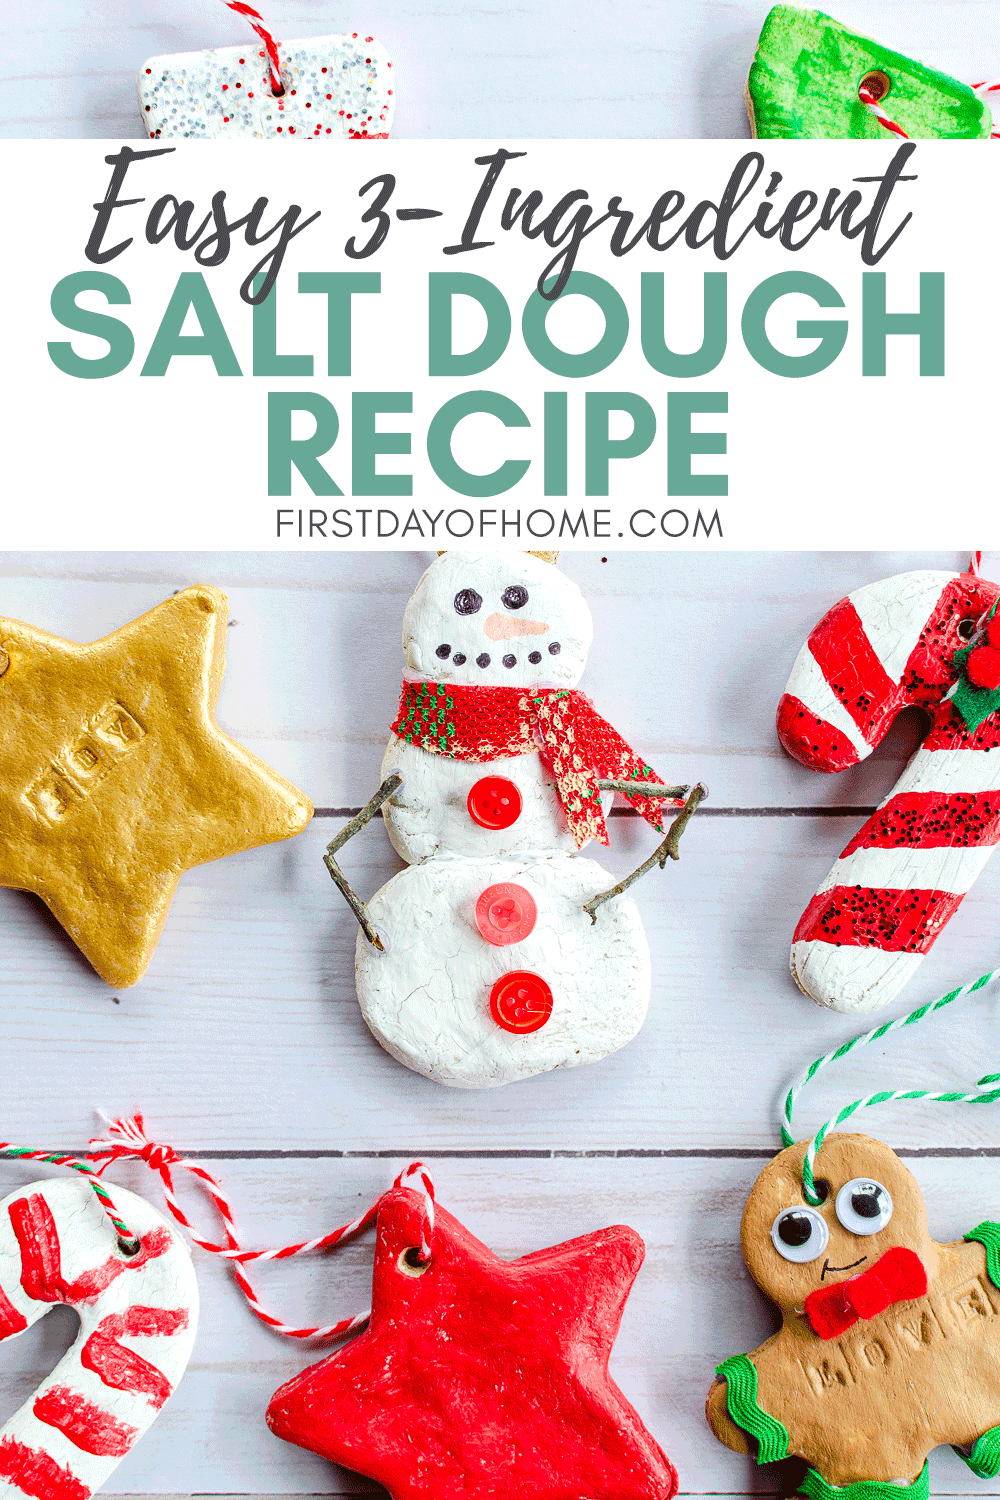 How To Make Salt Dough Ornaments The Kids Will Love Recipe Dough Ornaments Salt Dough Christmas Ornaments Food Ornaments